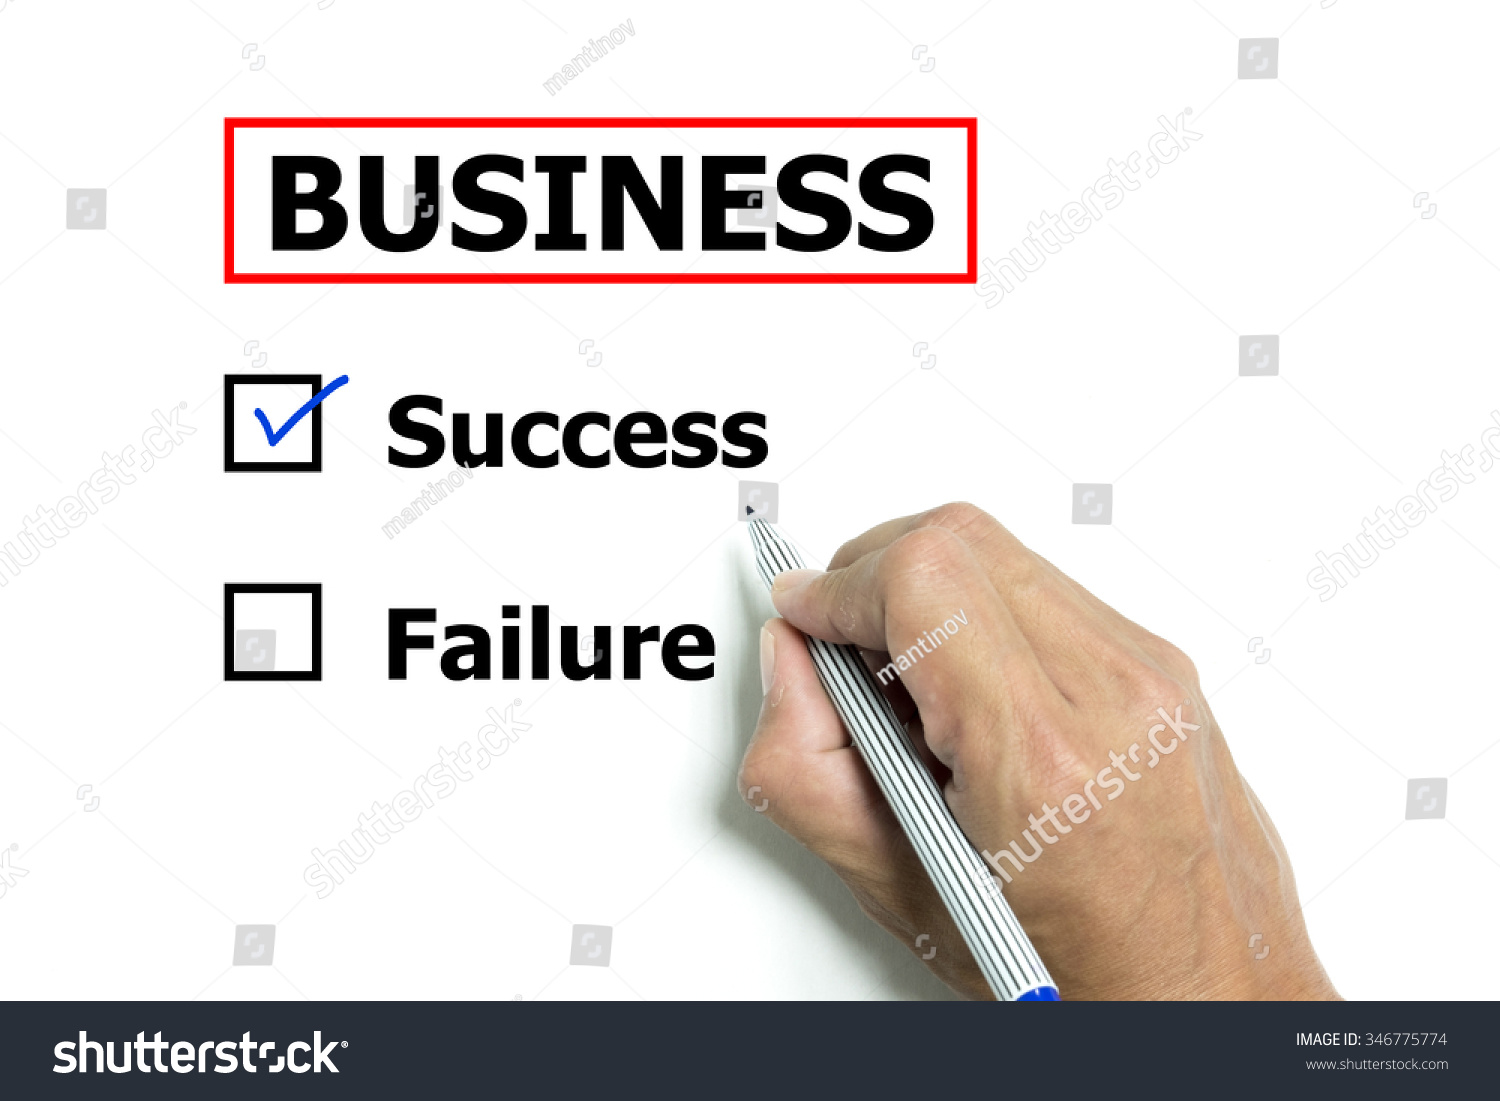 business failure paper Get this from a library business failure and change : an australian perspective : staff research paper [ian bickerdyke ralph g lattimore alan madge australia.